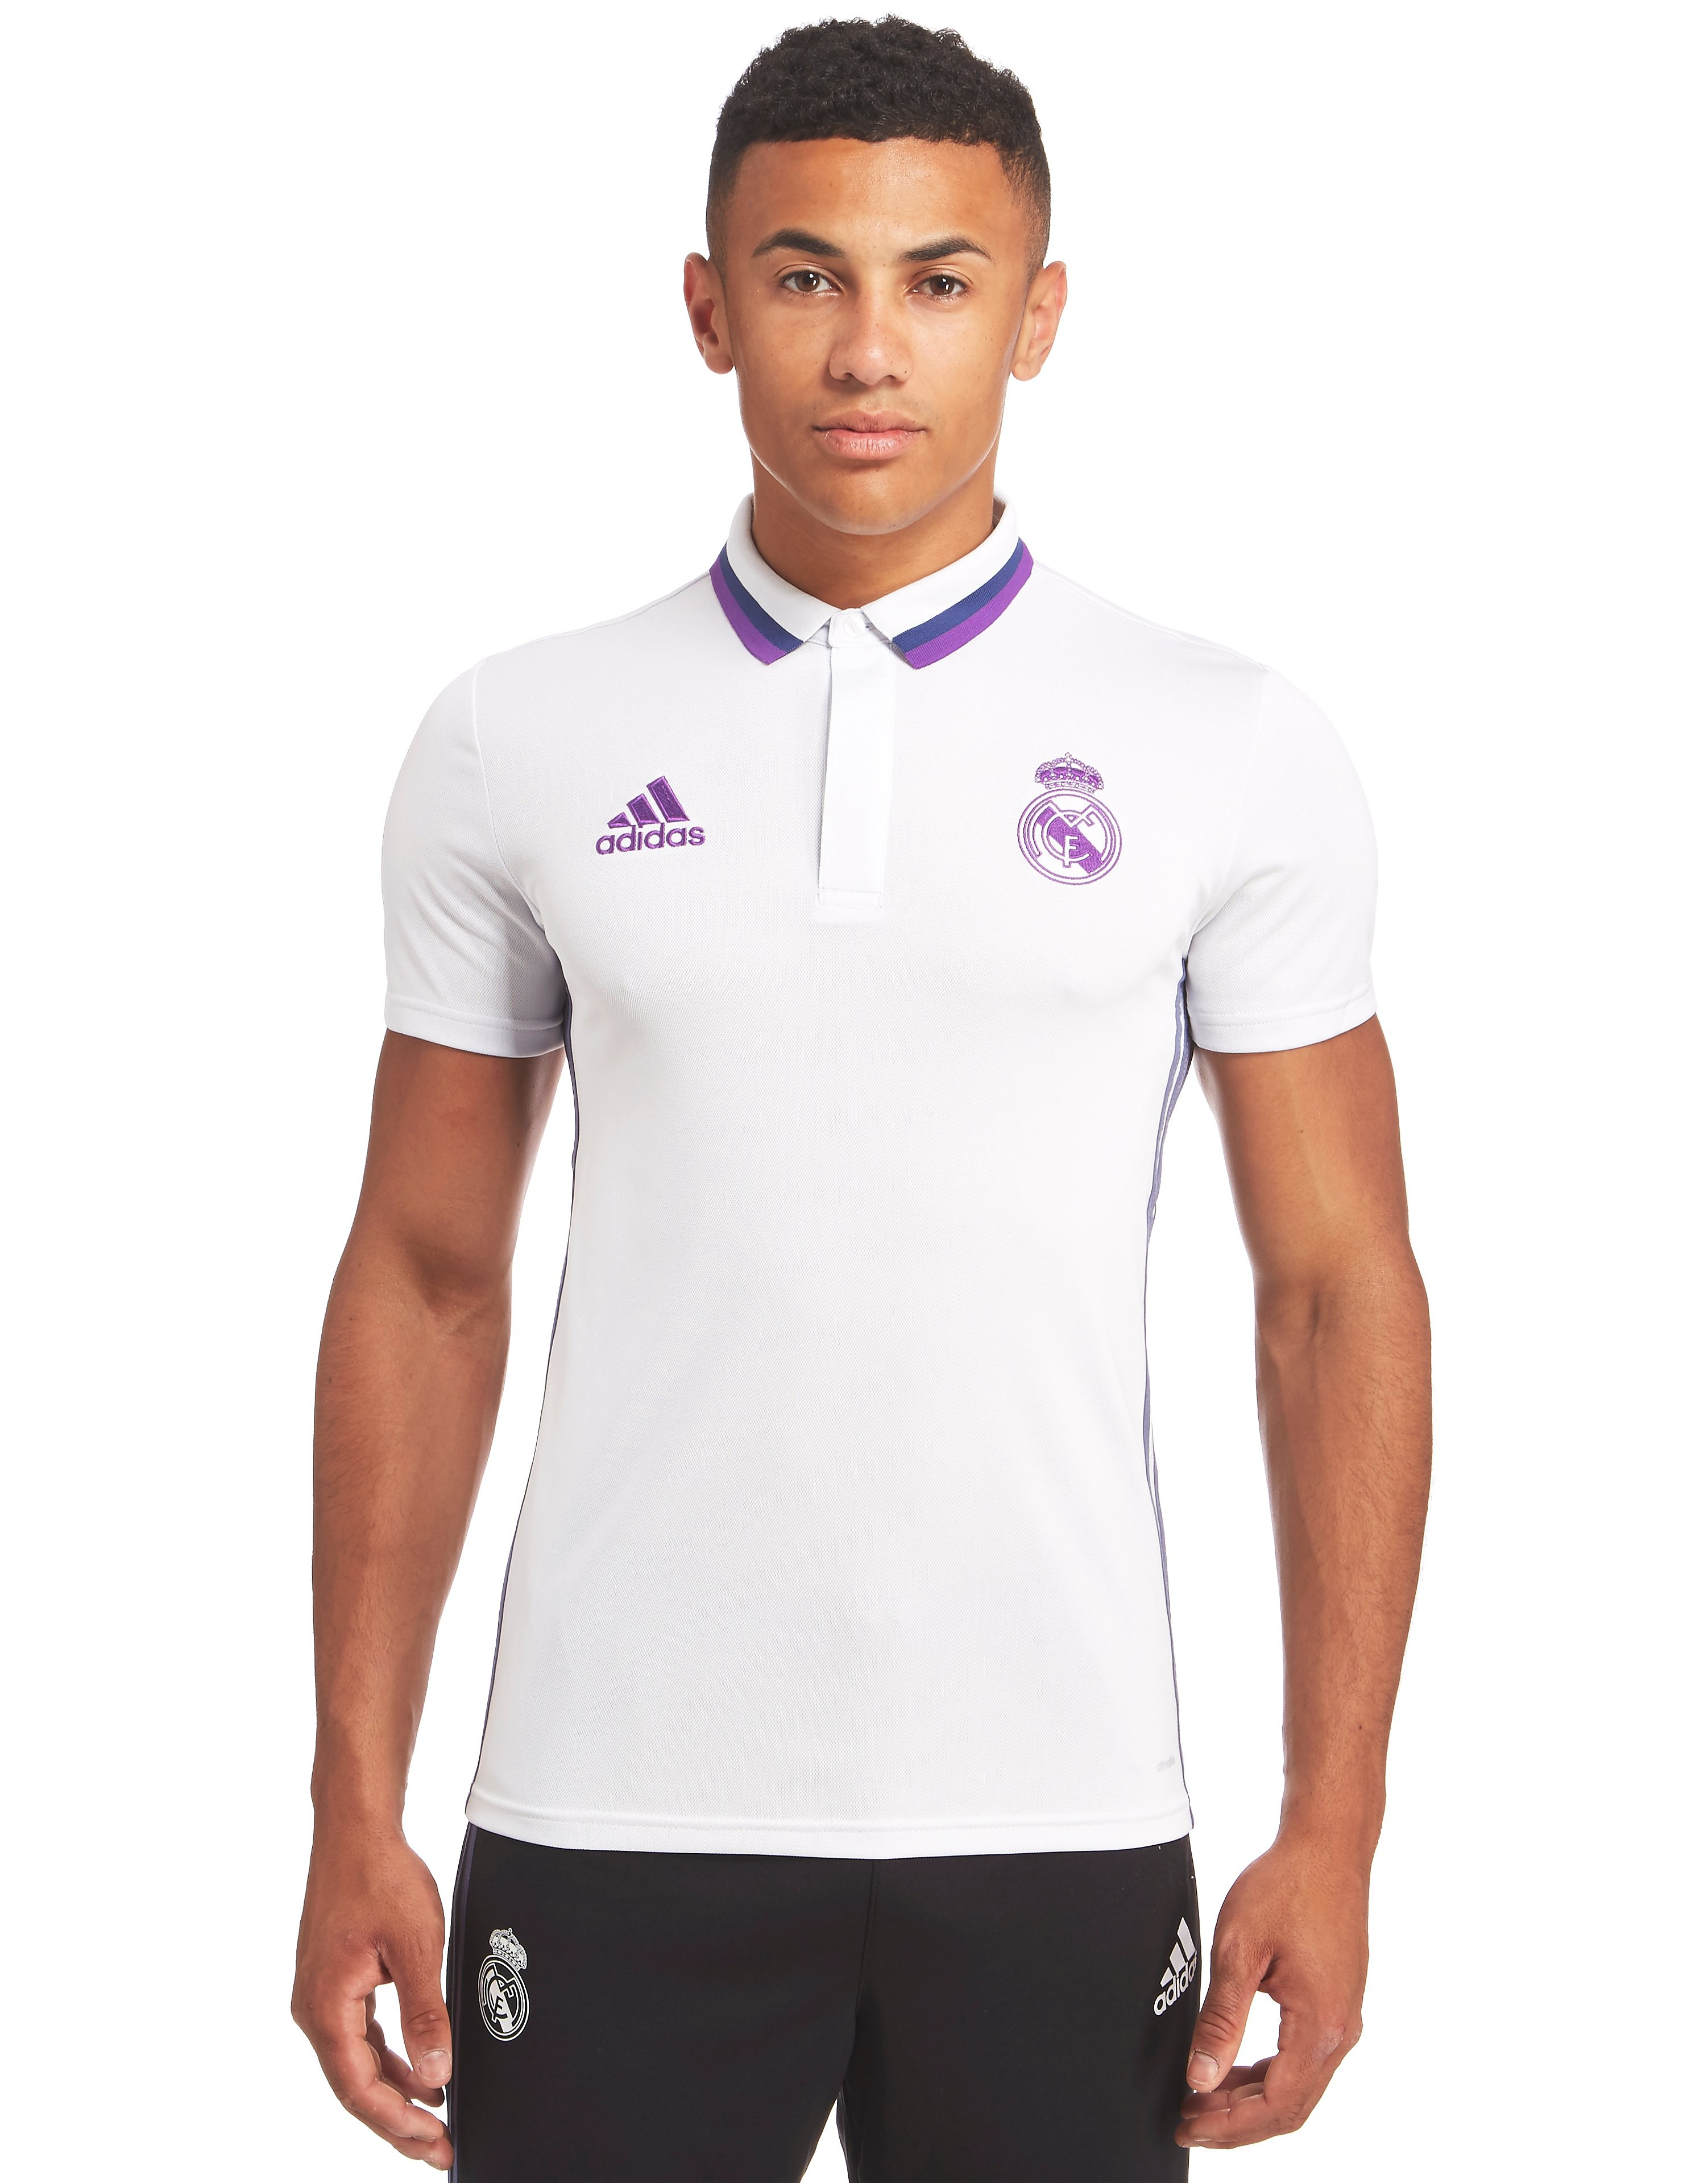 Leather gloves mens jd - Adidas Real Madrid Classic Polo Shirt White Mens White